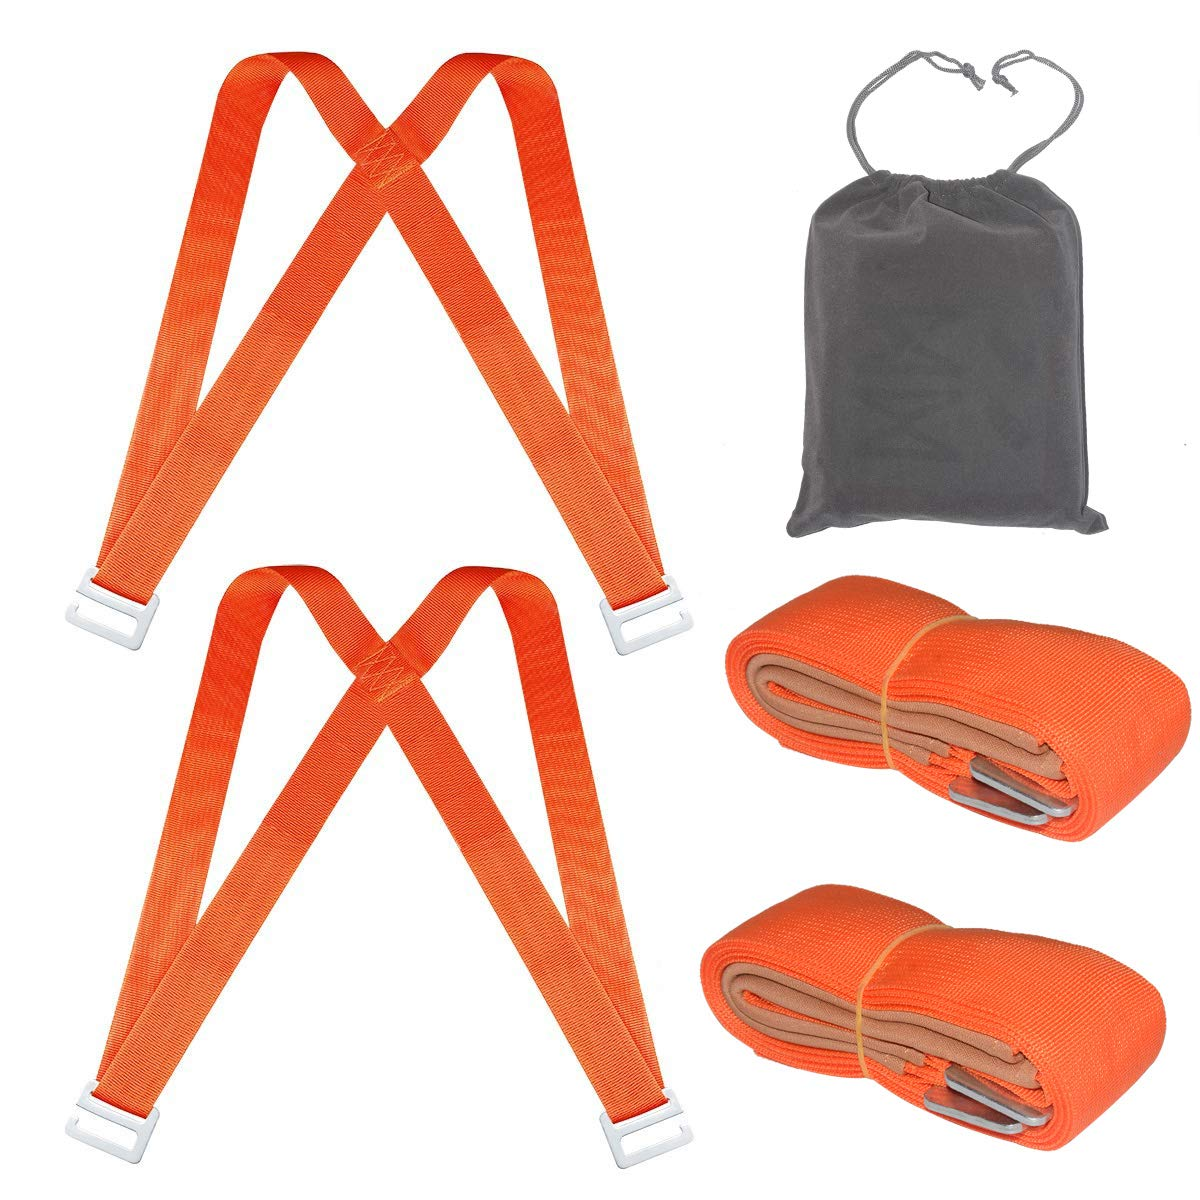 ACCOCO Moving and Lifting Straps with Handy Storage Bag,2 Person Shoulder Dolly Moving Straps Carrying Belt Max Load 650 Pound Easy Carry Furniture, Appliances, Mattresses, or Any Heavy Object